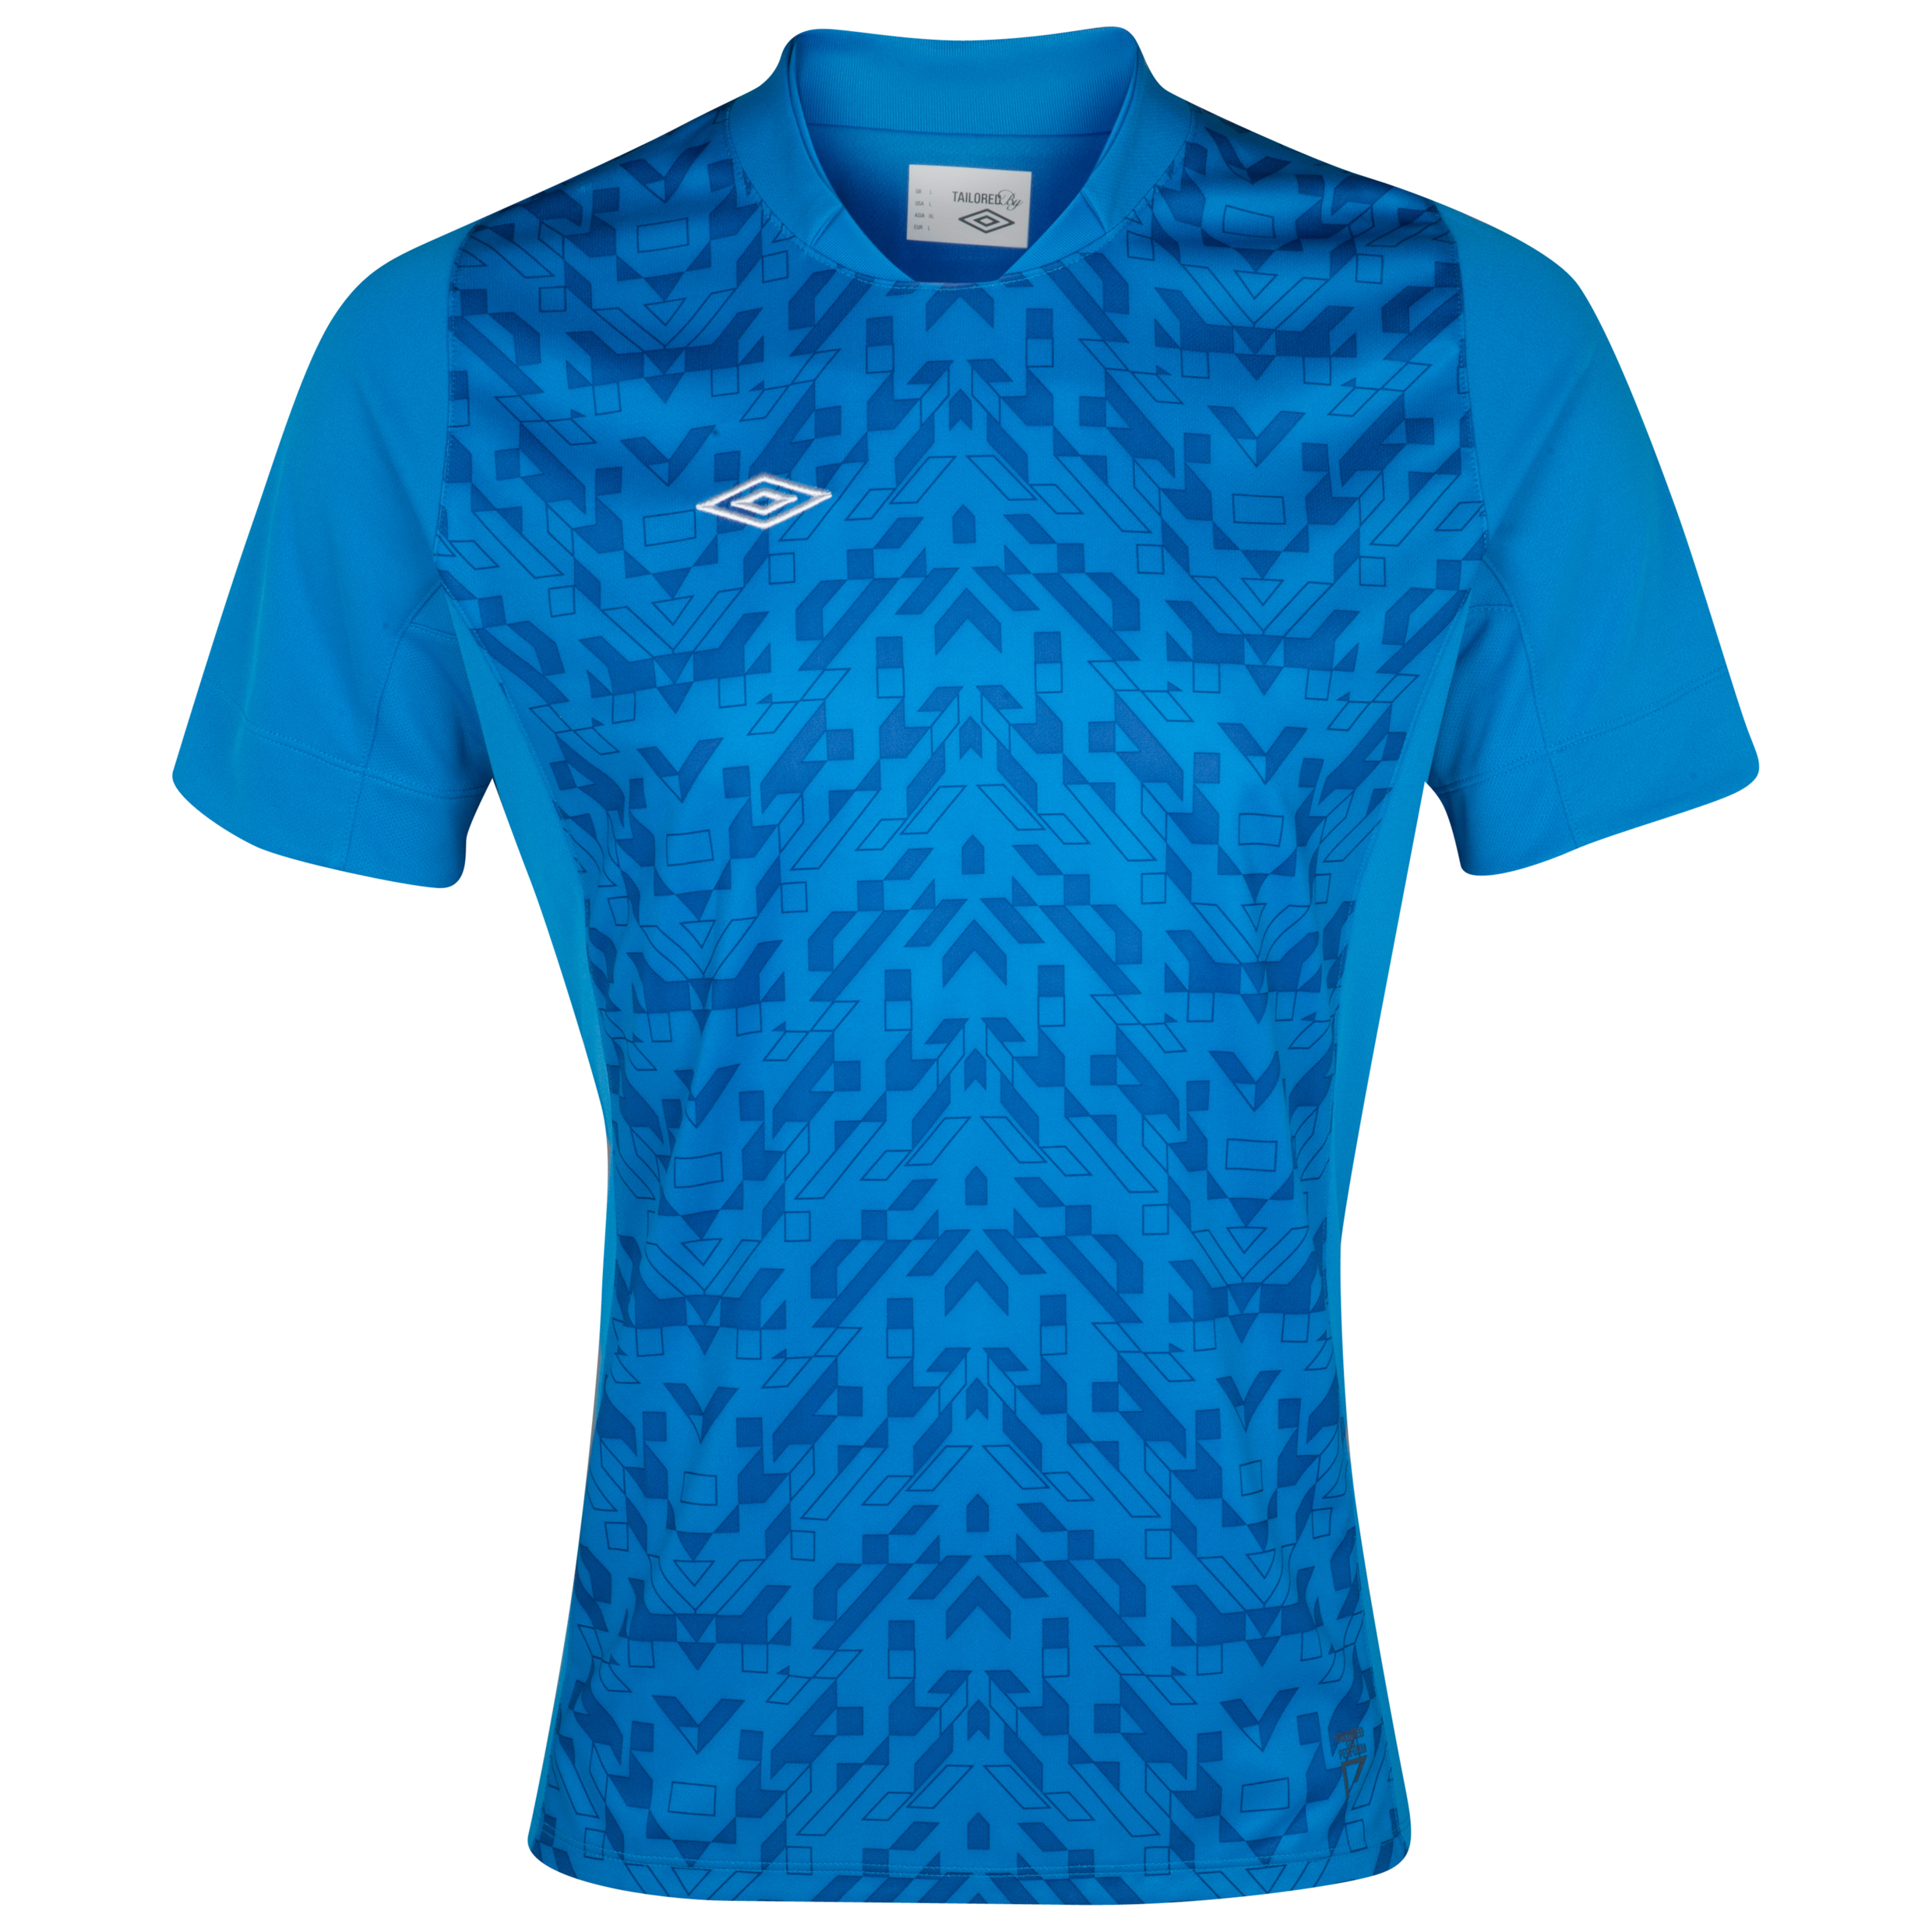 Umbro Geometra Graphic Poly Knit Tee - Brilliant Blue